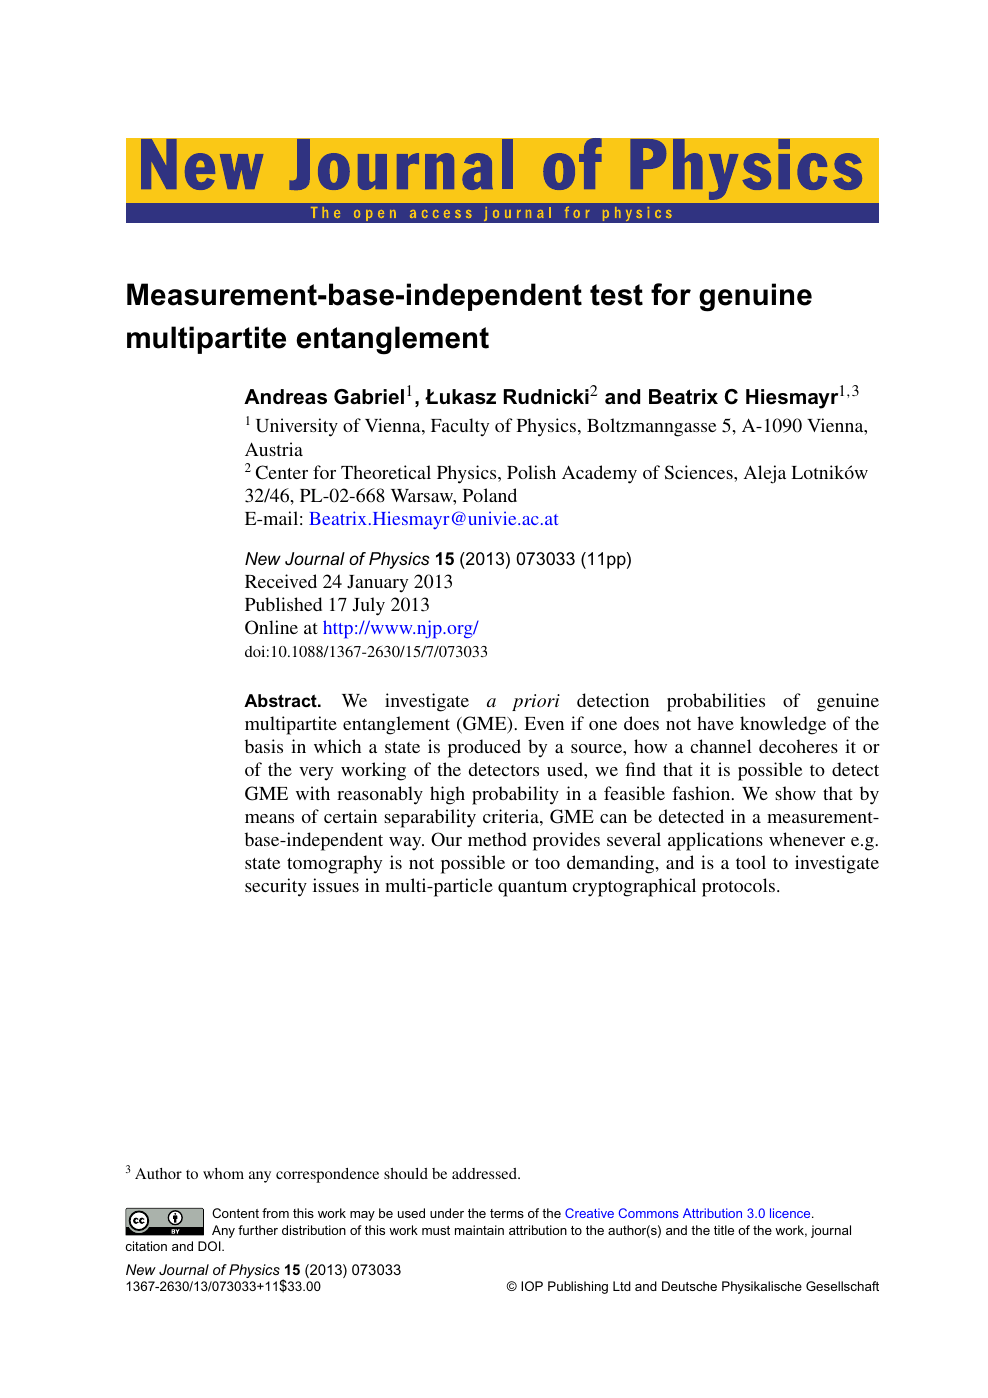 Measurement-base-independent test for genuine multipartite